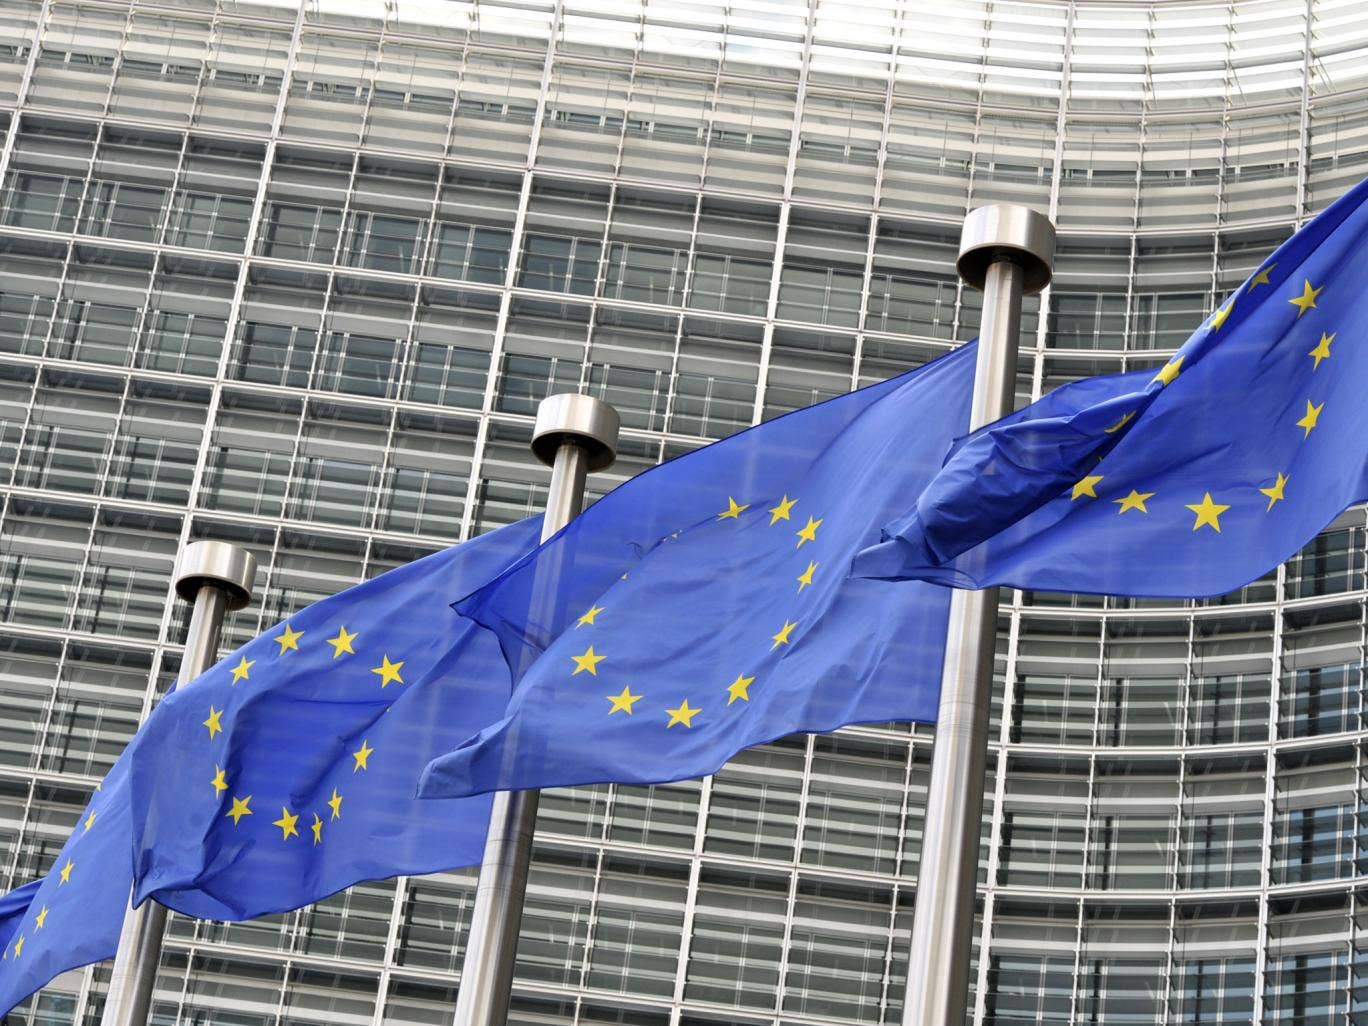 The proposed EU-US deal on trade is opposed by more than 200 organisations  in Europe